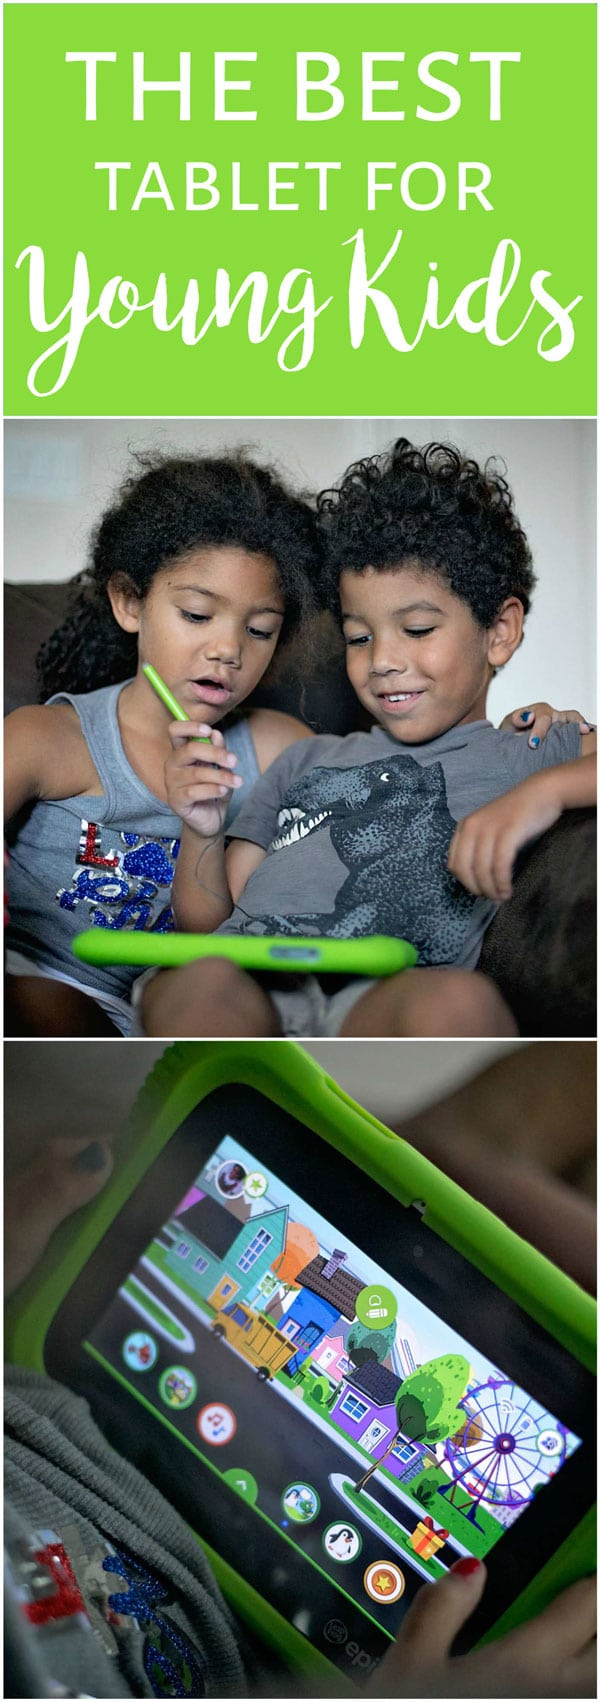 LeapFrog Epic Tablet Academy Edition is the one of the best tablets for young kids. Here's why...